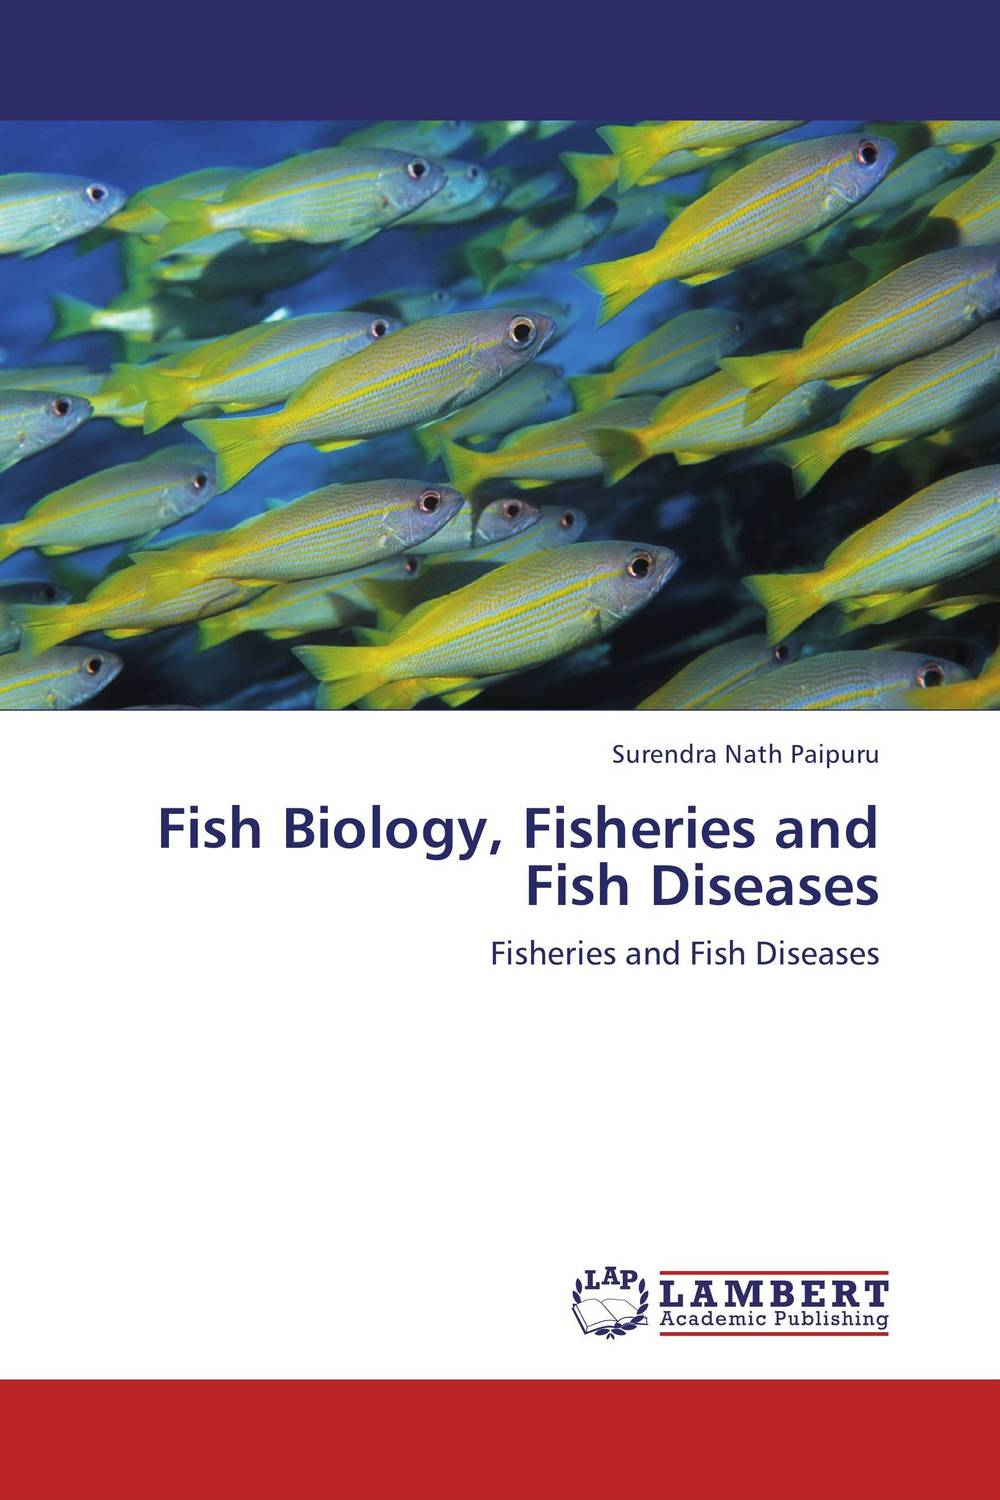 Fish Biology, Fisheries and Fish Diseases bruce bridgeman the biology of behavior and mind